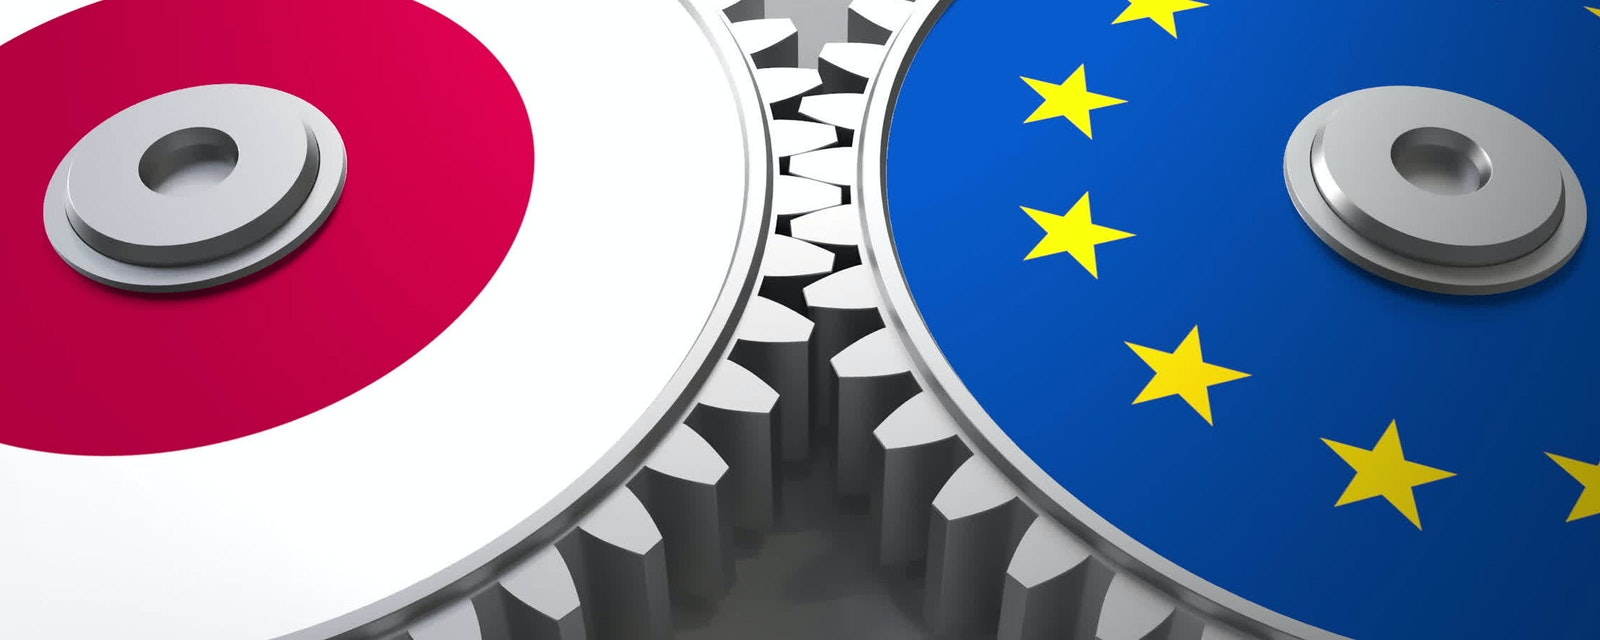 Flags of Japan and the European Union on meshing gears